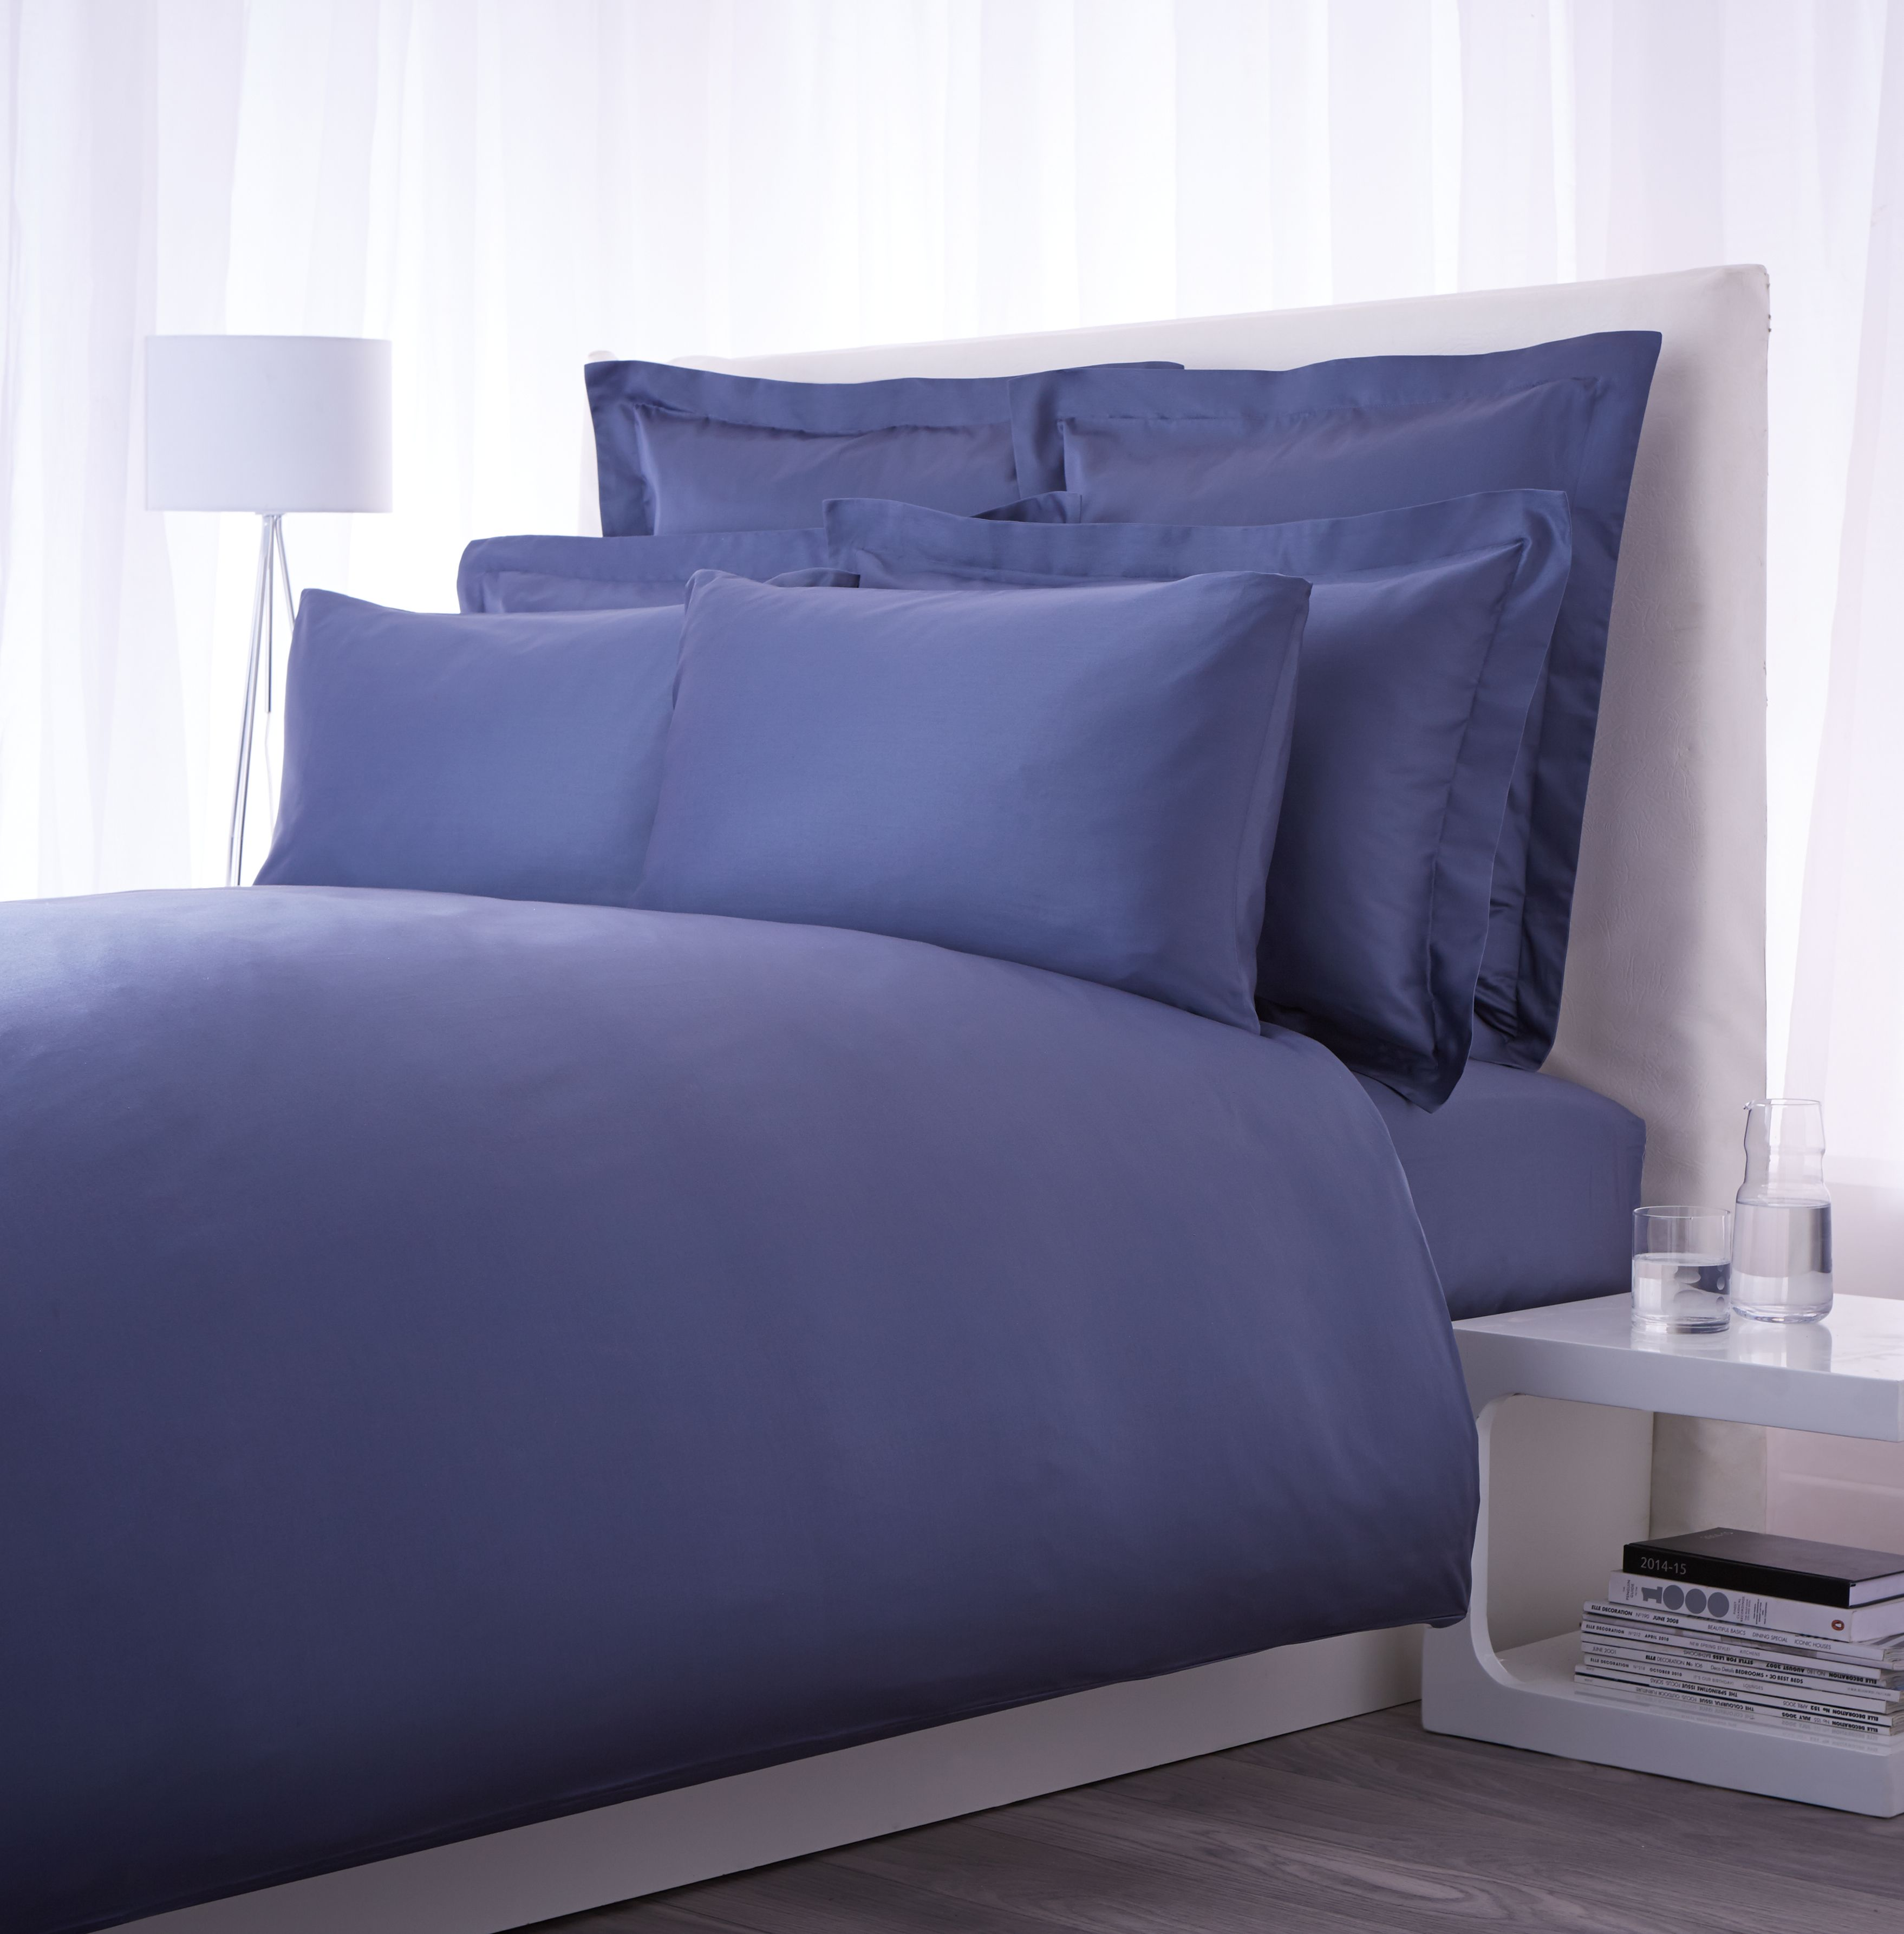 Luxury hotel collection 800 thread count king flat sheet white for Luxury hotel 750 collection sheets